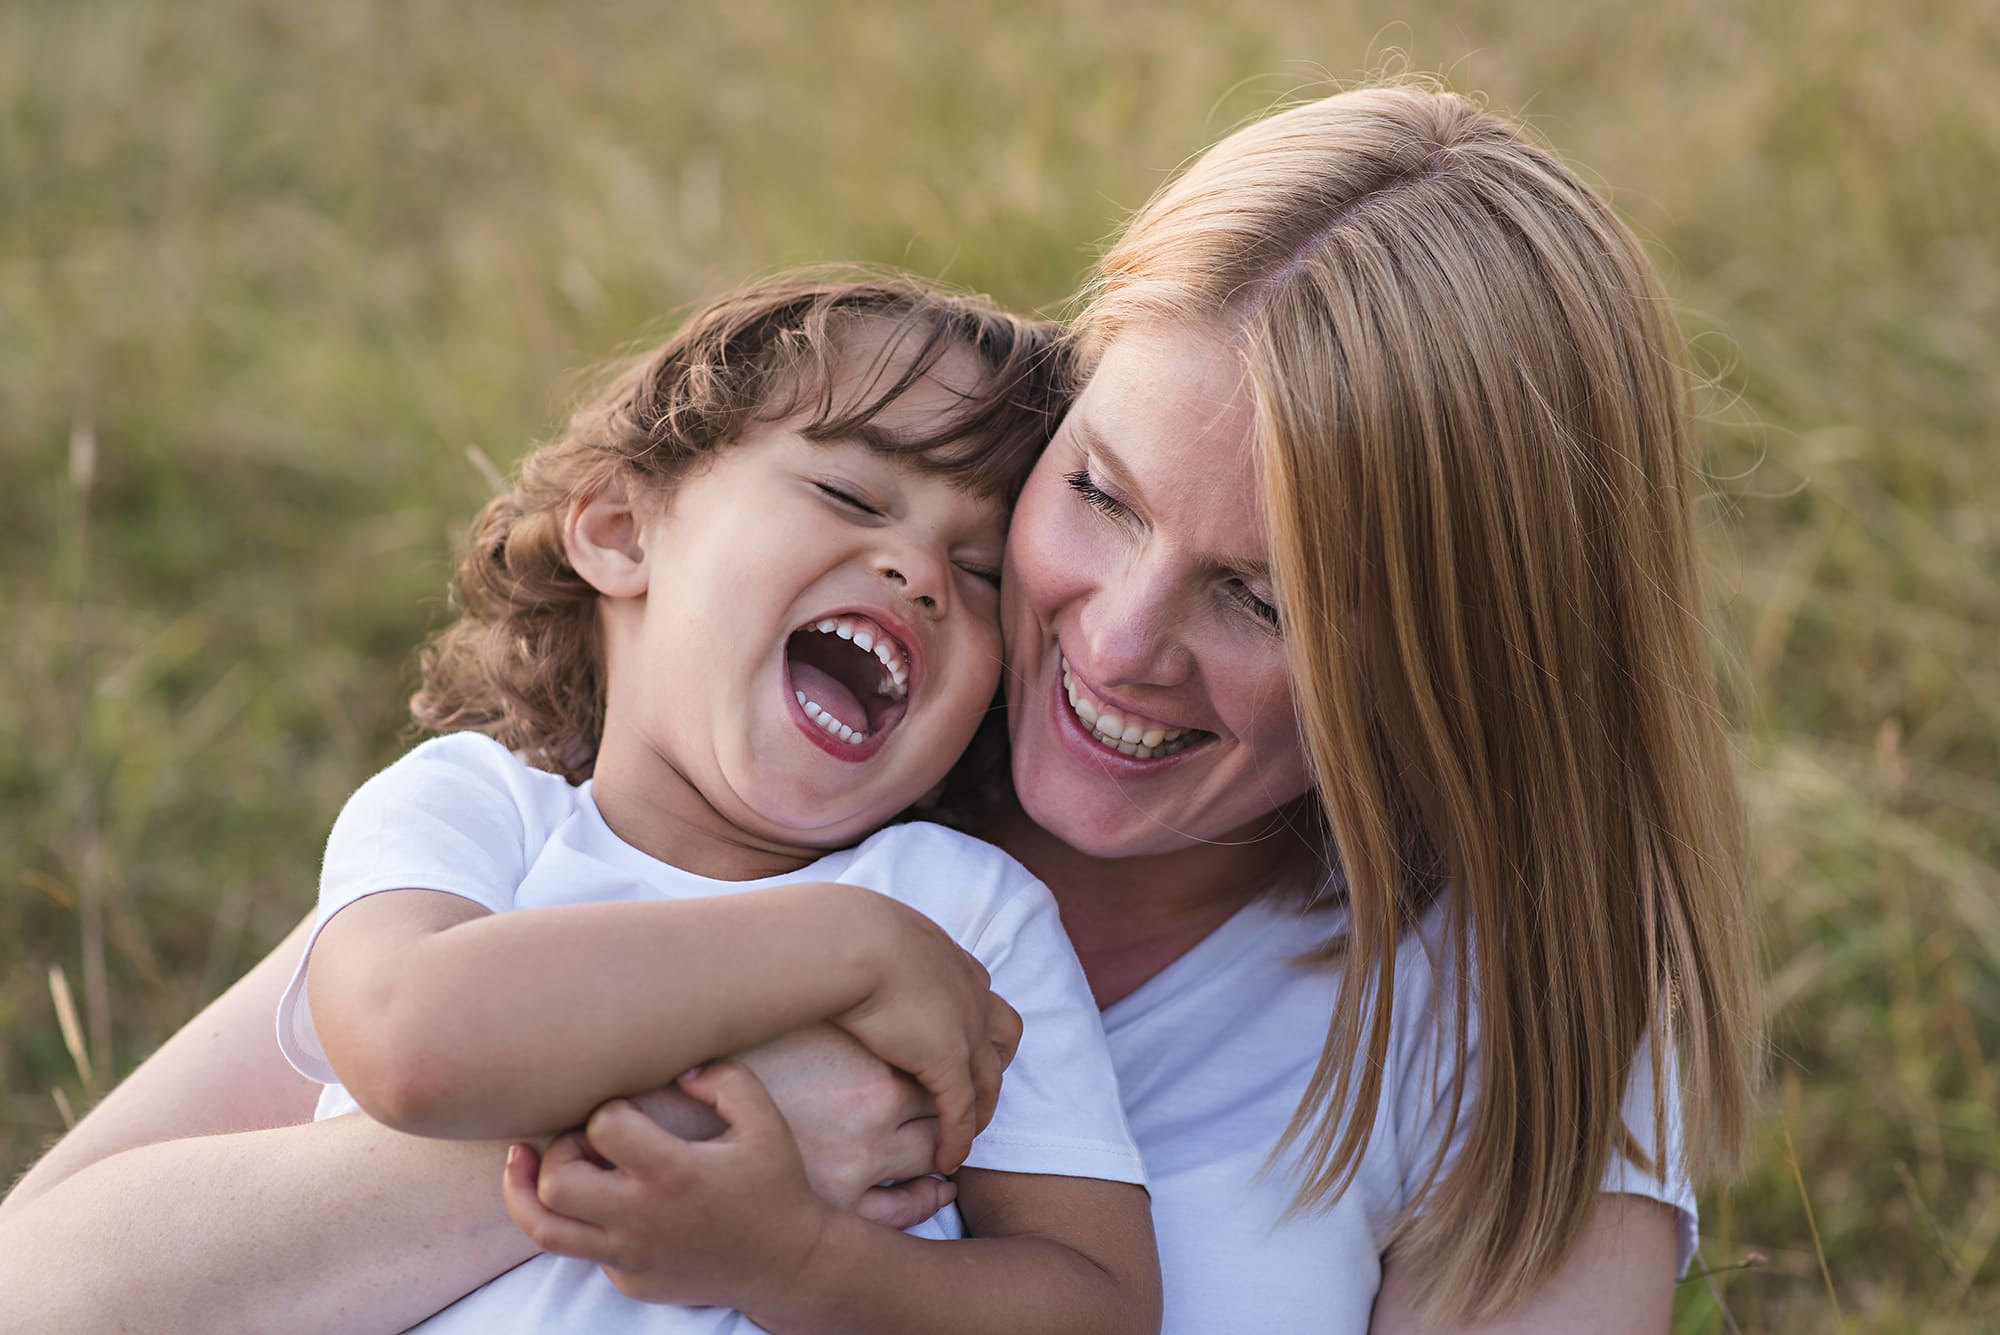 Natural family photographer, mum and son embrace and laugh together